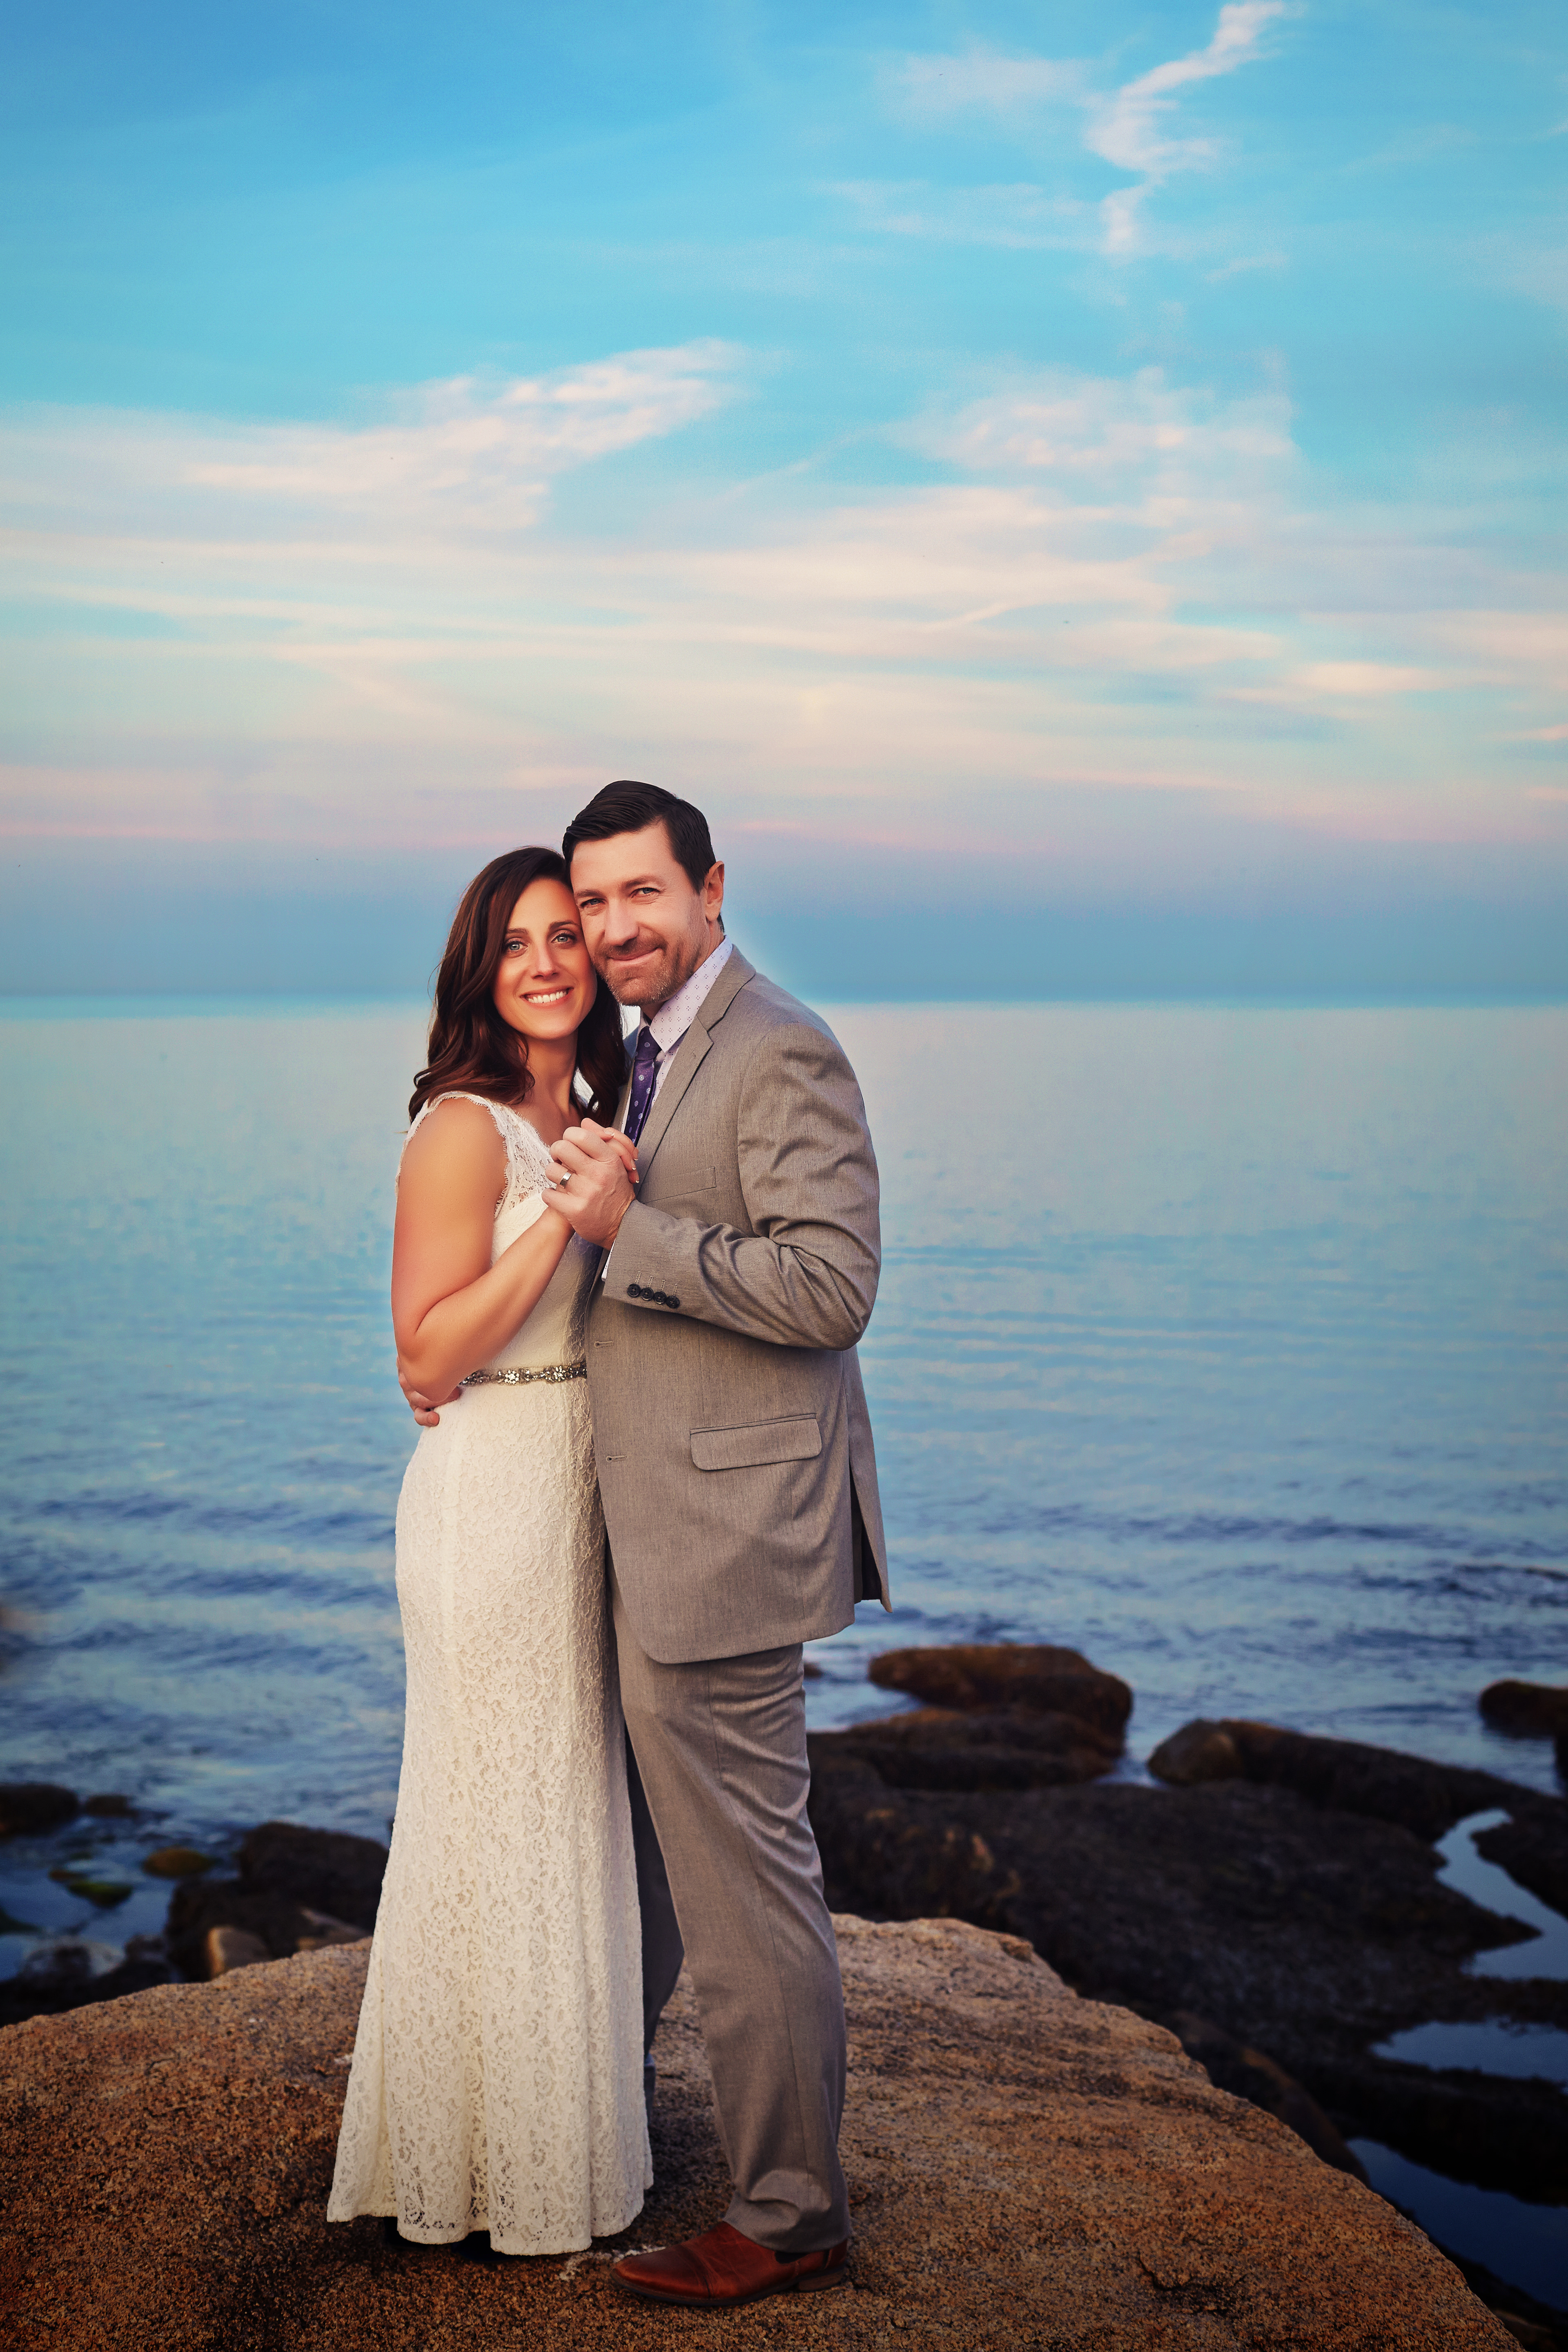 Best Wedding Photograher in Boston, original wedding gifts, offbeat wedding ideas, cheap but beautiful weddings, wedding planning software, inexpensive ways to get married, wedding table name ideas unique, unusual wedding gifts for bride and groom, great wedding entertainment, wedding stand ideas, wedding planning tips, wedding dinner entertainment, interesting wedding, very simple wedding ideas, small affordable wedding venues, wedding hire ideas, cool wedding decoration ideas, wedding games ideas, wedding service ideas, unique intimate wedding ideas, cheap wedding reception locations, summer wedding ideas on a budget, wedding planning help, wedding music ideas, wedding reception activities ideas, fun things for wedding reception, wedding spot, cool wedding themes, wedding checklist, wedding planning timeline, unique wedding reception activities, unique wedding reception entertainment, cute wedding decoration ideas, discount wedding decorations, interactive wedding ideas, the best wedding ideas, thrifty wedding ideas, outside wedding ideas on a budget, unique simple wedding ideas, wedding day activities, wedding reception program ideas, unique wedding reception decorations, daytime wedding entertainment, unique wedding reception themes, wedding timeline checklist, extraordinary wedding ideas, cool cheap wedding ideas, exclusive wedding venues, cheap wedding reception decorations, best cheap wedding ideas, unique wedding dinner ideas, private wedding venues, creative wedding ceremony ideas, wedding reception activities for guests, wedding venue search, affordable reception venues,